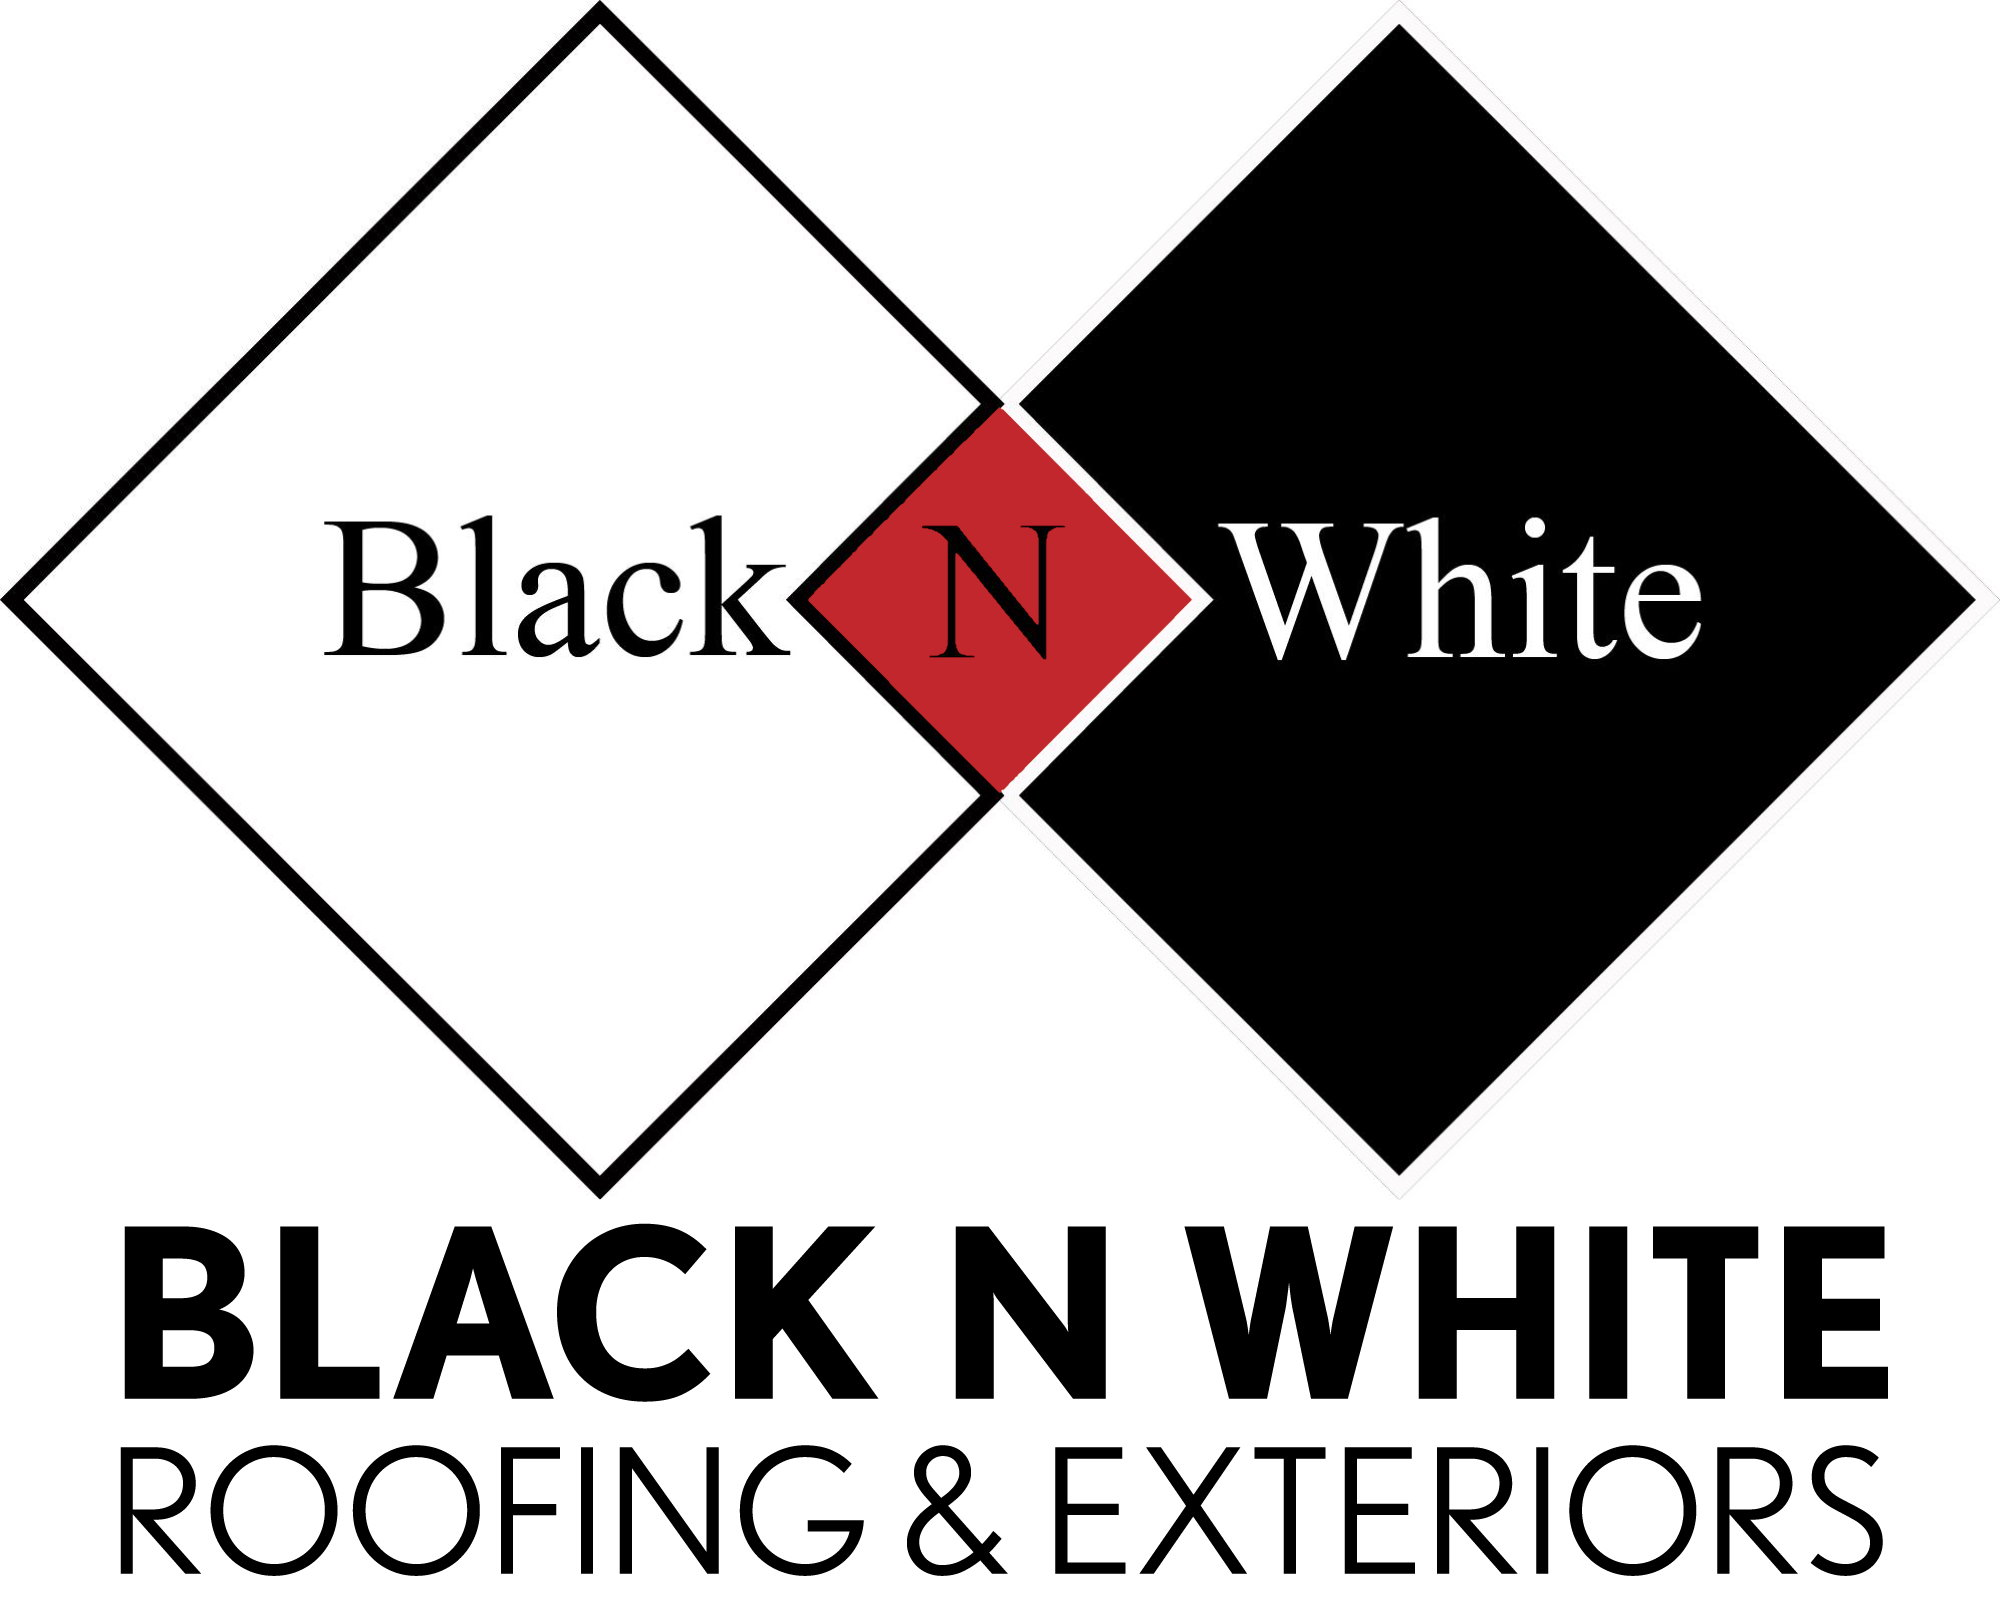 Black N White Roofing & Exteriors